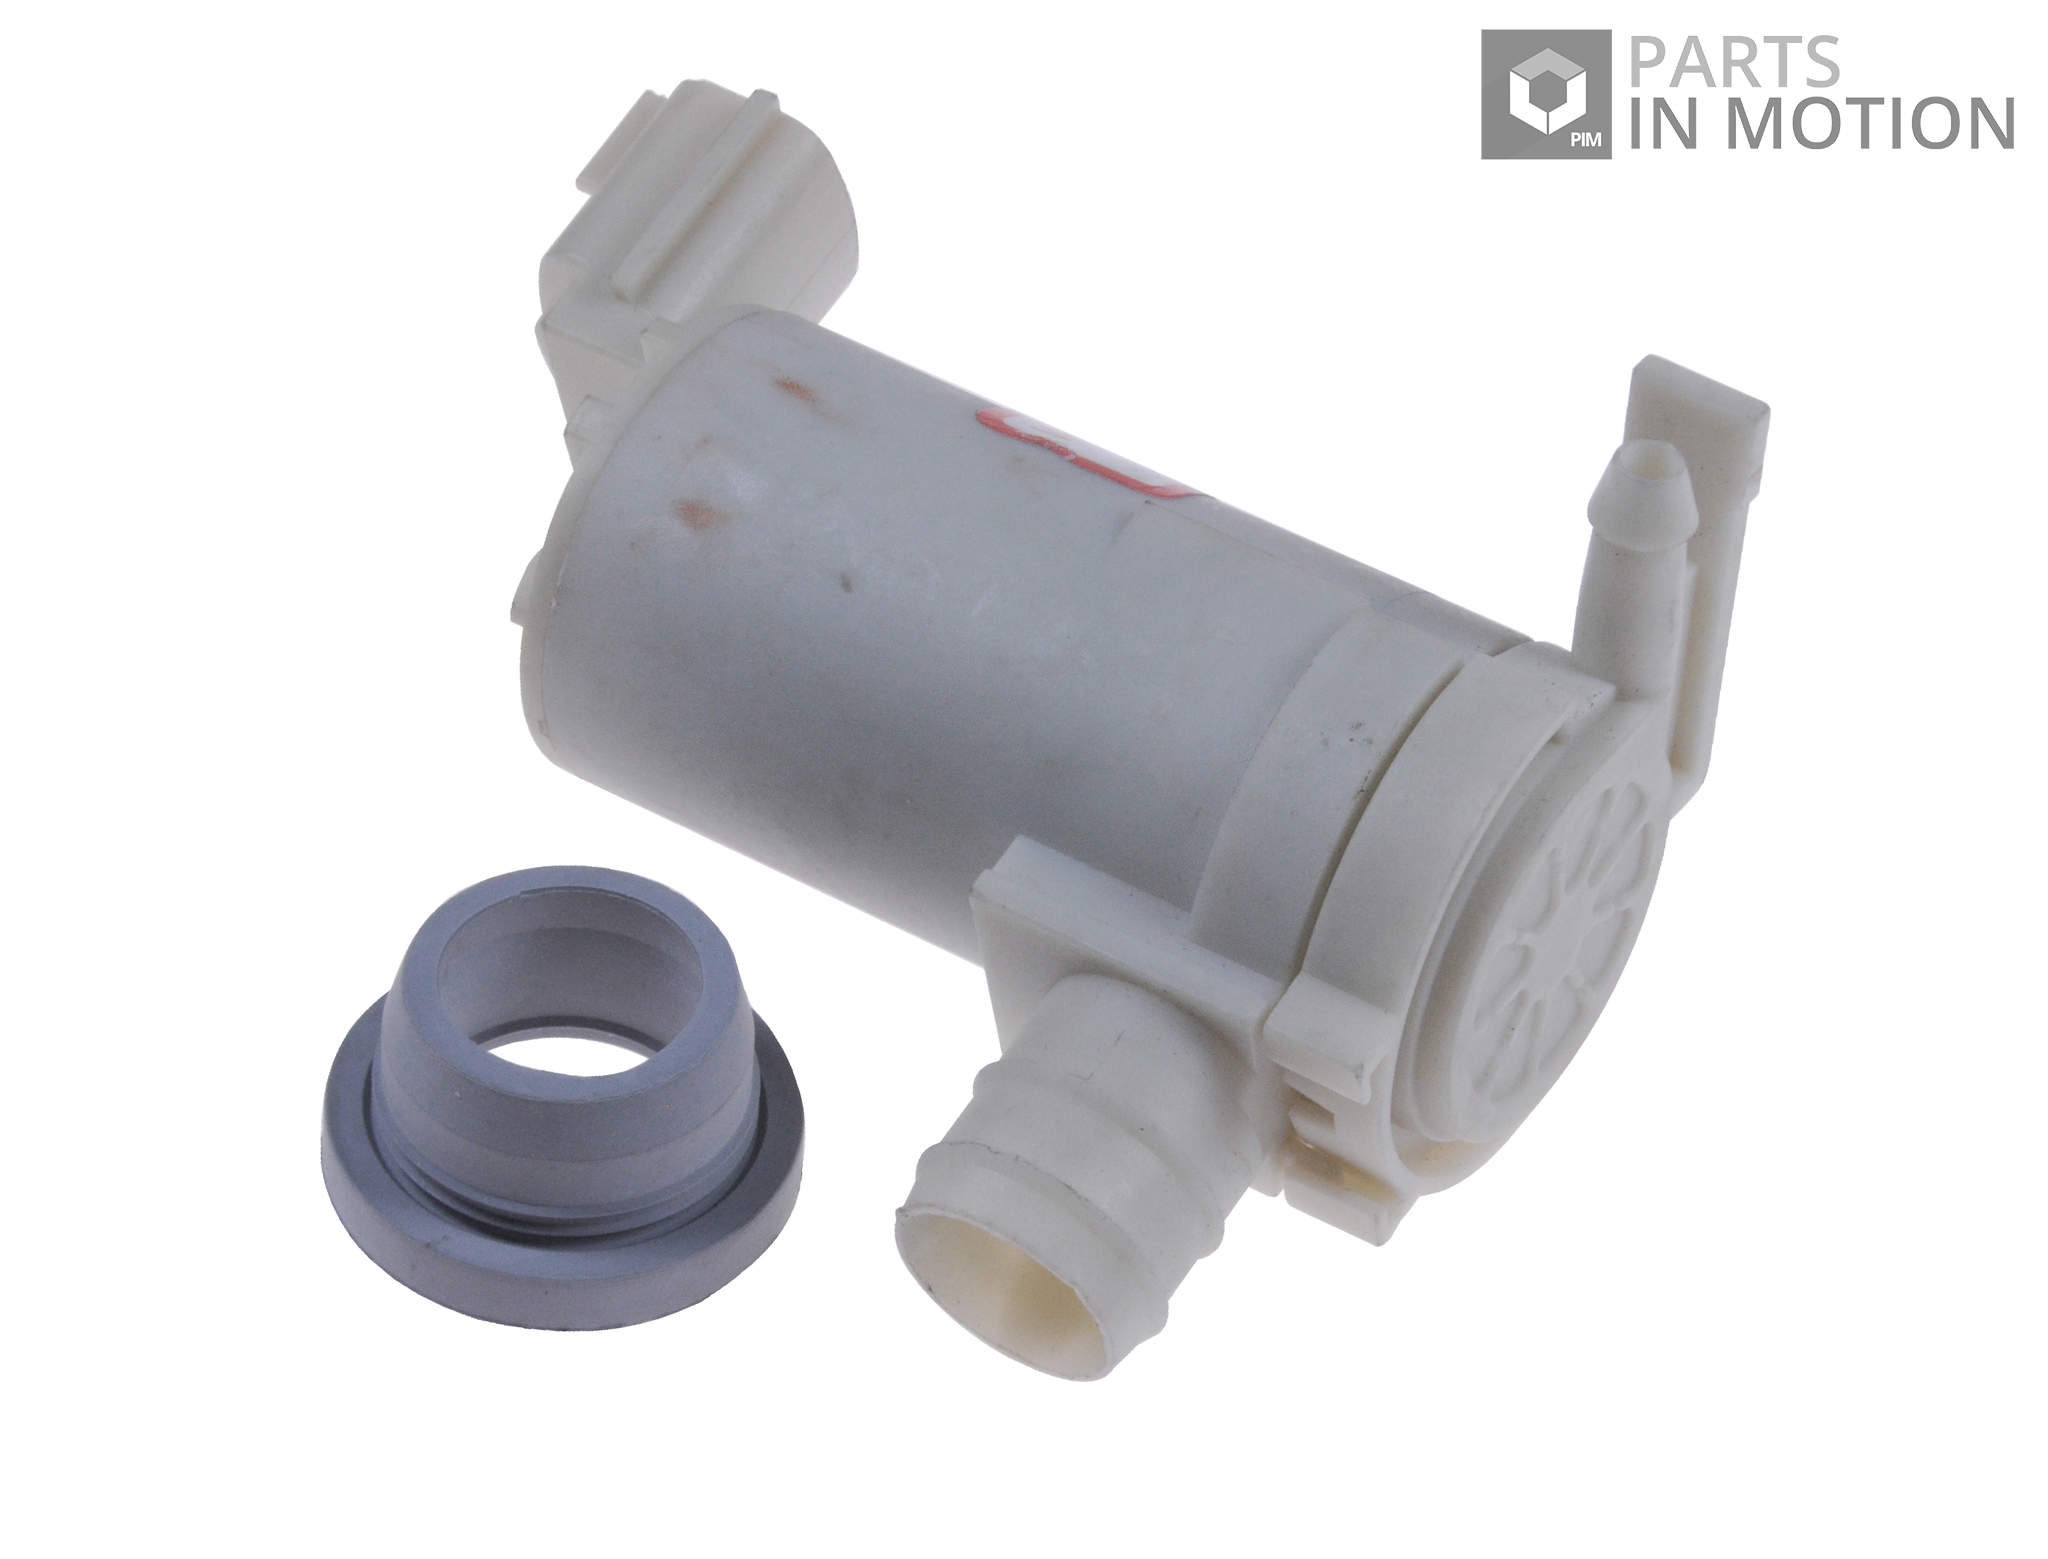 Washer Pump fits ISUZU D-MAX Mk2 2.5D 2012 on ADL 28920AR000 Quality Replacement